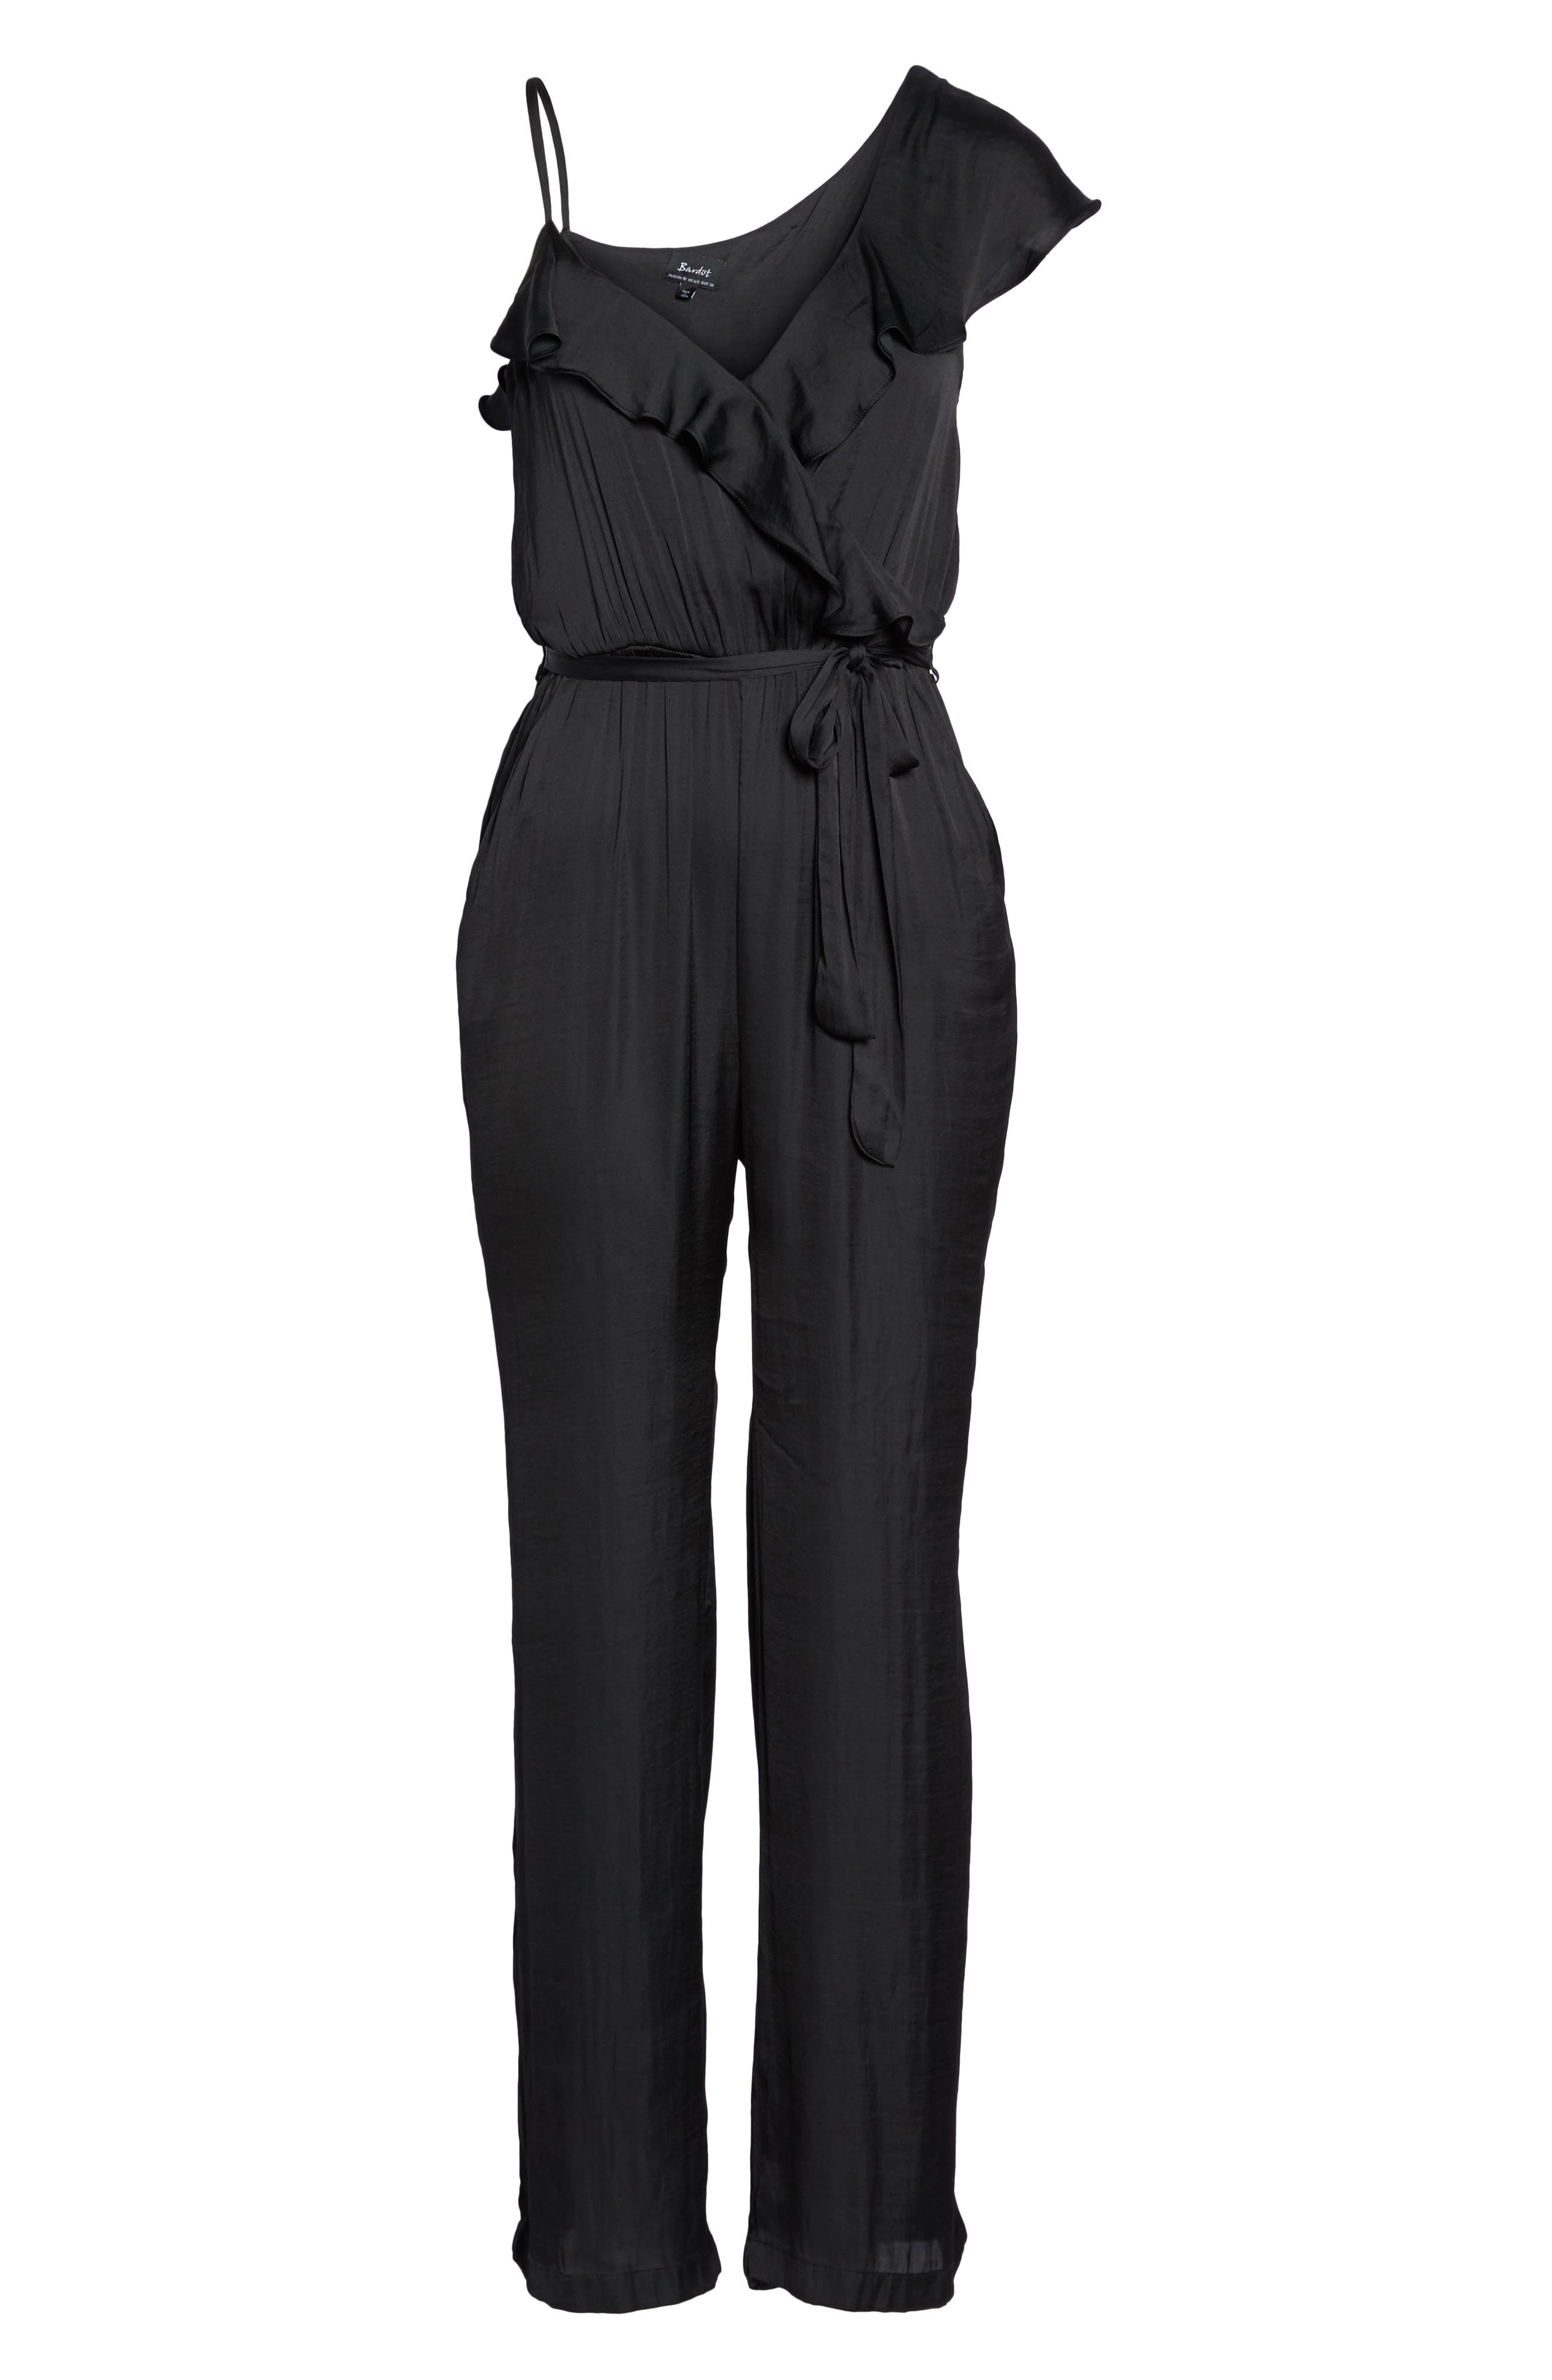 Milly Jumpsuit,                             Alternate thumbnail 6, color,                             001